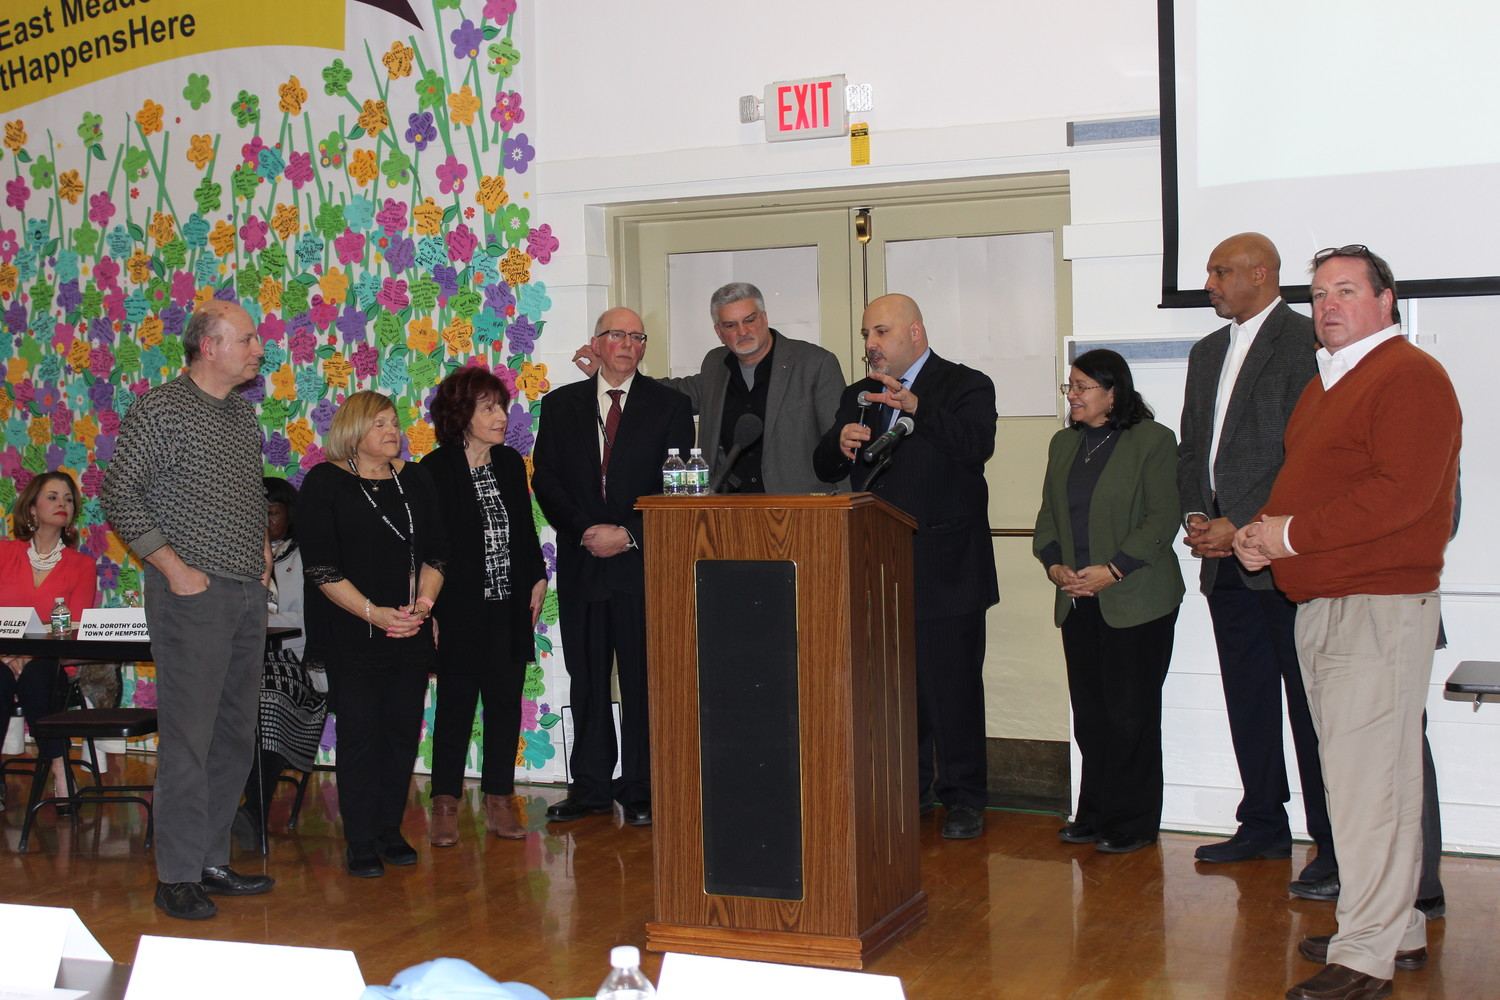 Eric Alexander, the director of Vision Long Island, fourth-from-right, with the East Meadow Chamber of Commerce hosted a meeting for leaders from the communities surrounding Nassau Coliseum to learn more about the proposed $1.5 billion plan to develop the 72 acres surrounding it. From East Meadow were Mike Panagatos, left, Helen Meittinis, Norma Gonsalves, Joe Parisi and Chamber President Frank Camarano.